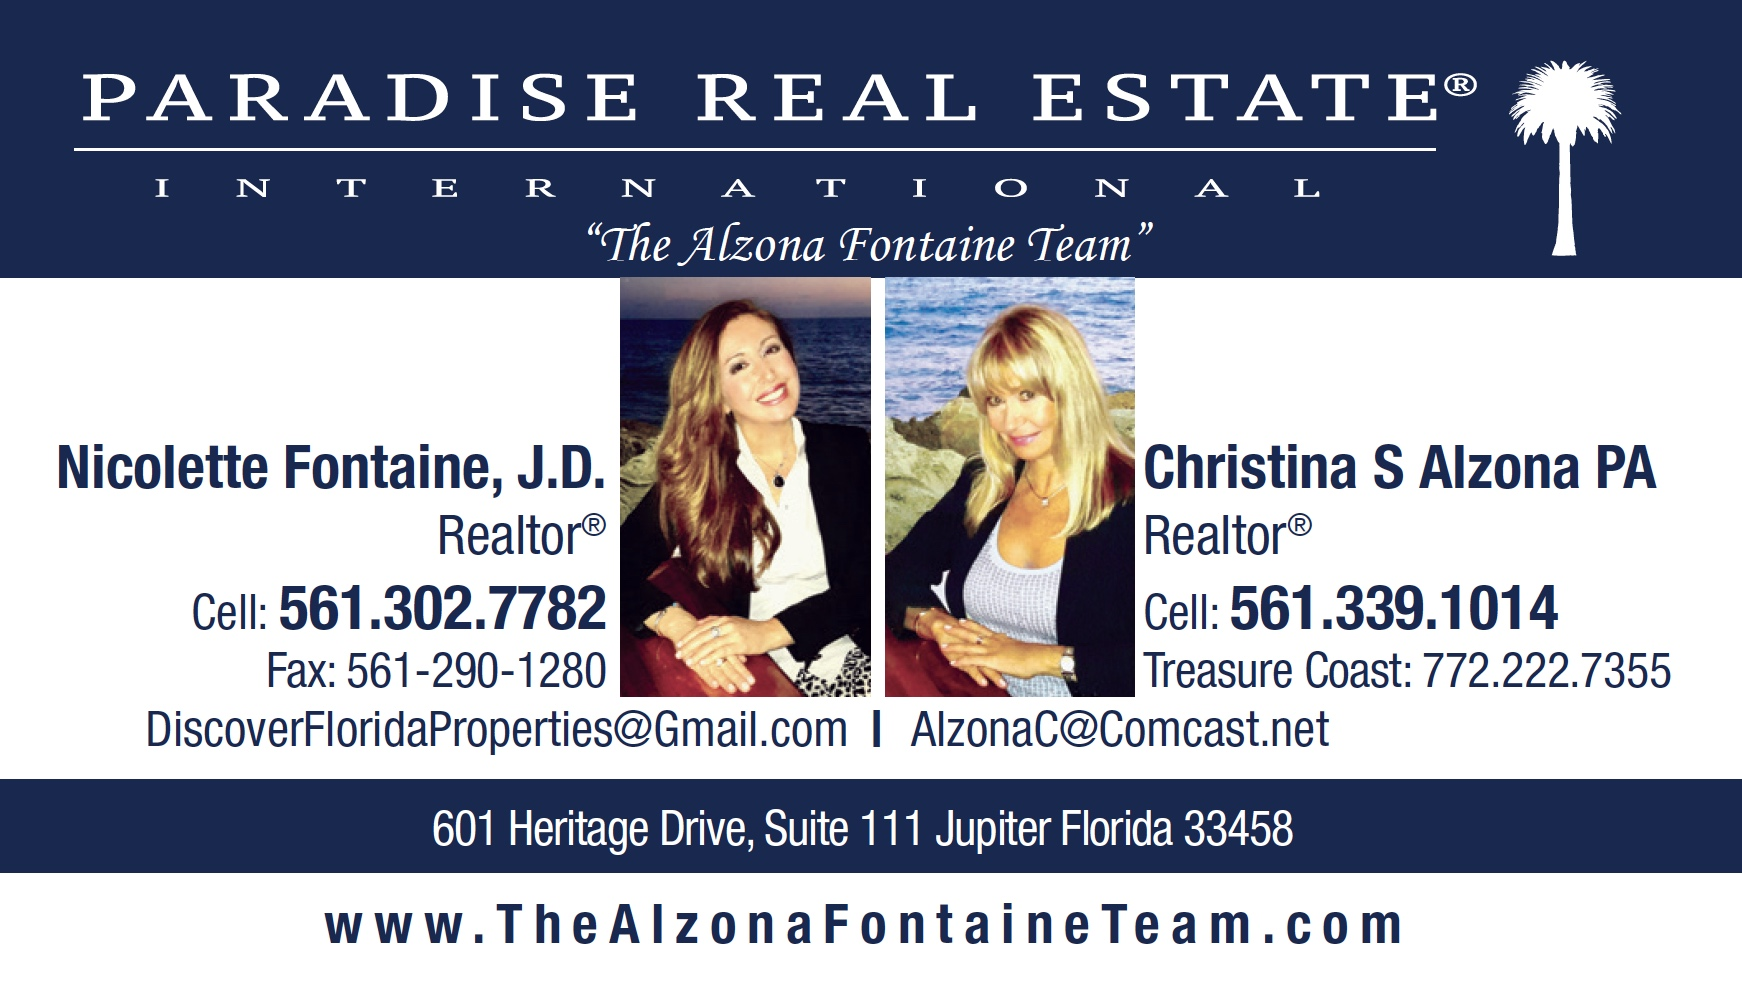 """Nicolette Fontaine & Christina Alzona – Realtors at ParadiseReal Estate International - 601 Heritage Drive, Suite 111, Jupiter, FL 33458 - """"The Alzona Fontaine Team"""" with Paradise Real Estate International have offices in Jupiter, Palm Beach Gardens and Wellington Florida areas; This professional real estate team will advise and guide you through the Process to Buy your Dream Home, Investment Property or Sell your Property at the best price, anywhere from Jupiter, Juno Beach, Palm Beach Gardens, Tequesta, Hobe Sound to the Treasure Coast (St Lucie & Martin County), as well as Wellington, Delray Beach, Boca Raton, West Palm Beach, Palm Beach Island and North Broward County Florida. Christina Alzona PA and Nicolette Fontaine Specialize in Waterfront, Beachfront, Intracoastal, Golf Course, New Home Construction, Country Club , Equestrian, Farm and Energy Efficient communities. Christina and Nicolettespeak Italian and Polish languages and work with international clients; our company Lists Locally and Markets Listings Globally! – Christina Alzona PA is of Polish descent, and she comes with 21 years real estate experience having worked with buyers, sellers and investors in residential and commercial real estate. Christina resides in the Palm Beaches for 25 years, and prior, lived in Warsaw Poland, Italy and New York. She had her own fashion manufacturing business in the Garment Center on 7th Avenue in Manhattan, as well as her own retail stores. Her daughter,Nicolette Fontaine, J.D. is an experienced Tech Savvy Realtor who brings 14 Years Real Estate experience from the Florida and Tennessee markets to the table. Prior to Real Estate, Nicolette earned her Juris Doctor Law Degree and worked in Entertainment Law, Public Relations and Music Industry. Thanks to her diverse background in business affairs, law, media relations and marketing, as well as her exceptional negotiation skills and experience as a Realtor and a Property Investor herself, Nicolette has been able to prop"""